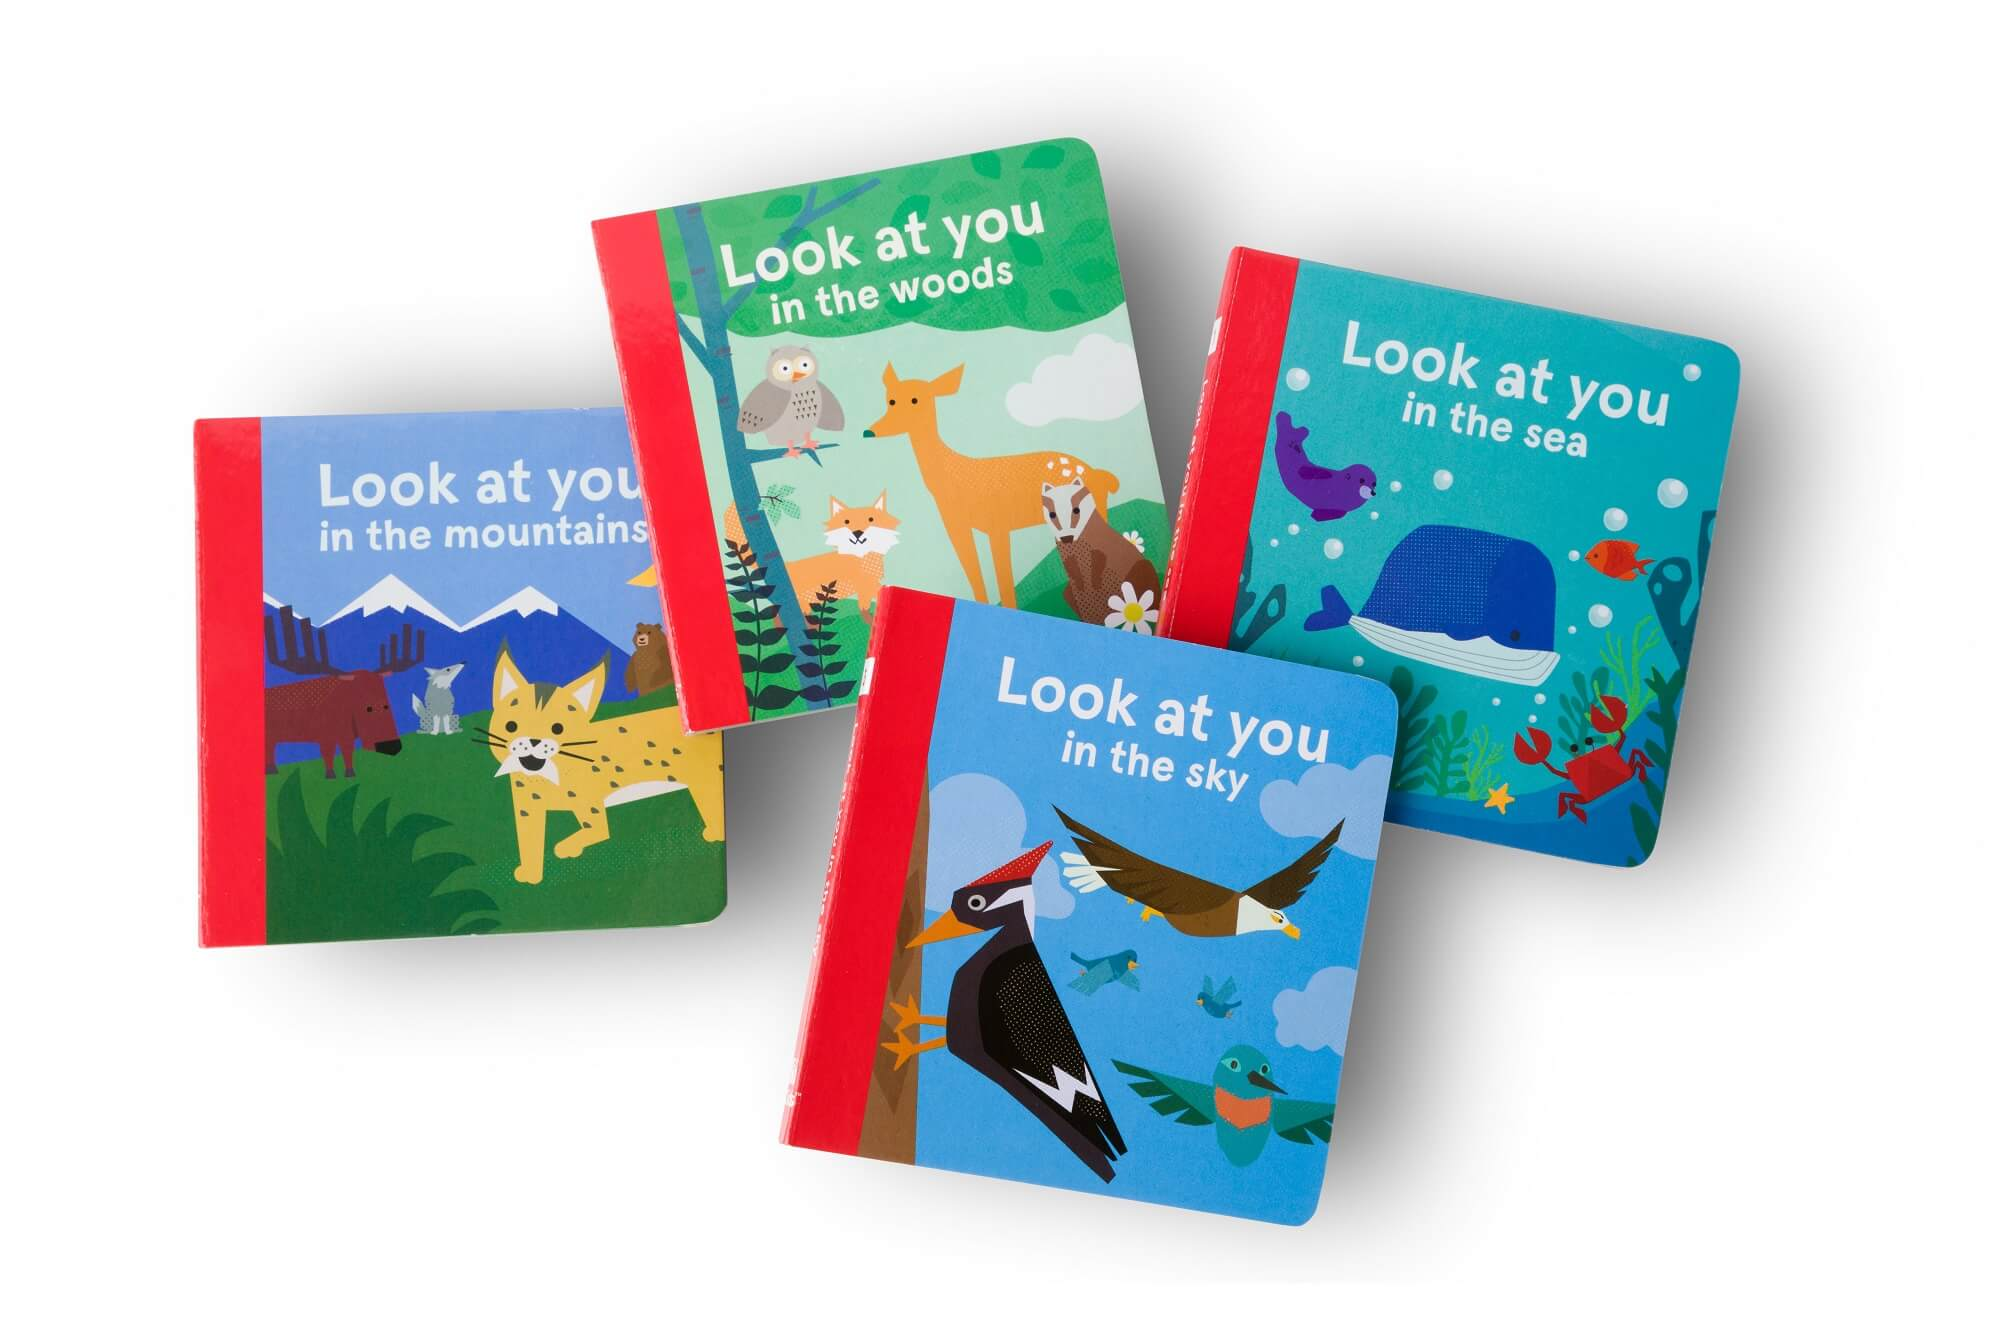 The Look at You book collection, including Look at You in the Sea, Look at You in the Woods, Look at You in the Sky, and Look at You in the Mountains